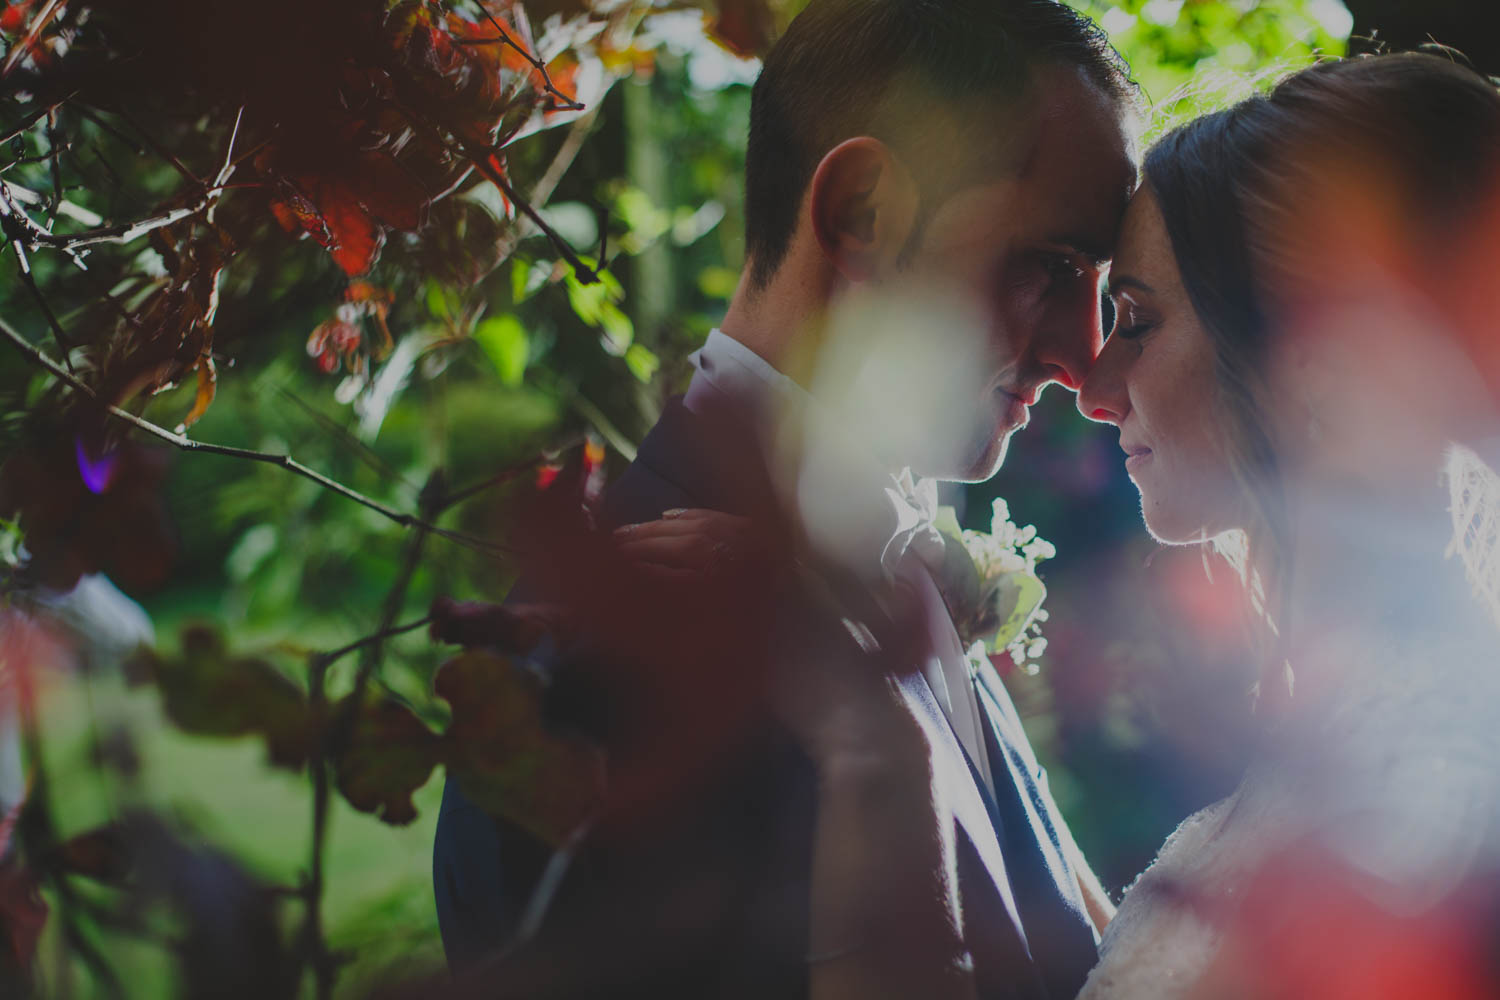 south-wales-and-south-west-wedding-wales-photographer-1-4